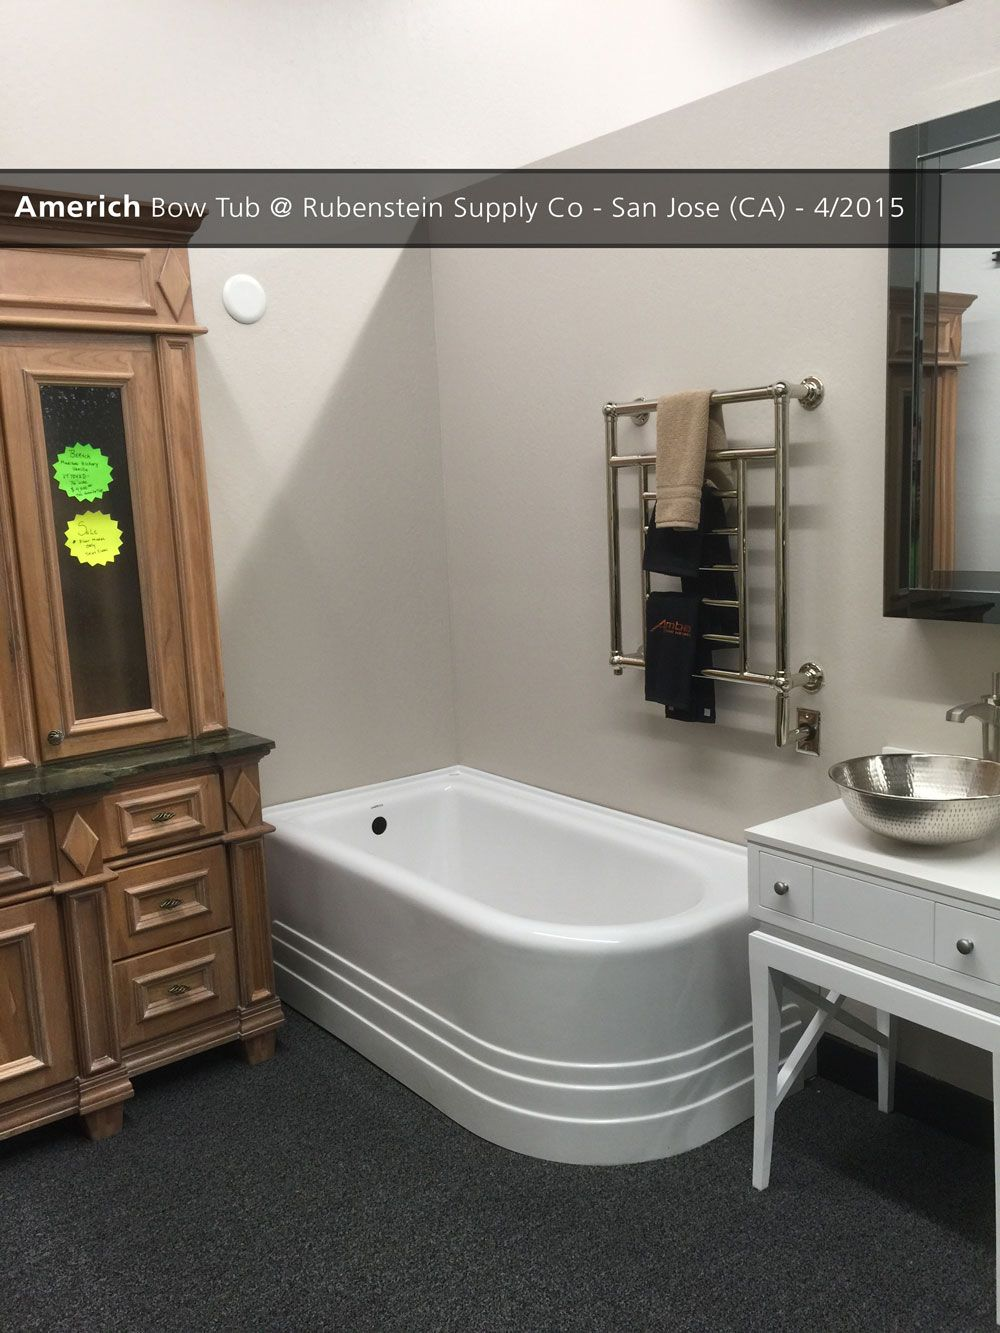 Americh Bow Tub @ Rubenstein Supply Co - San Jose (CA) - 4